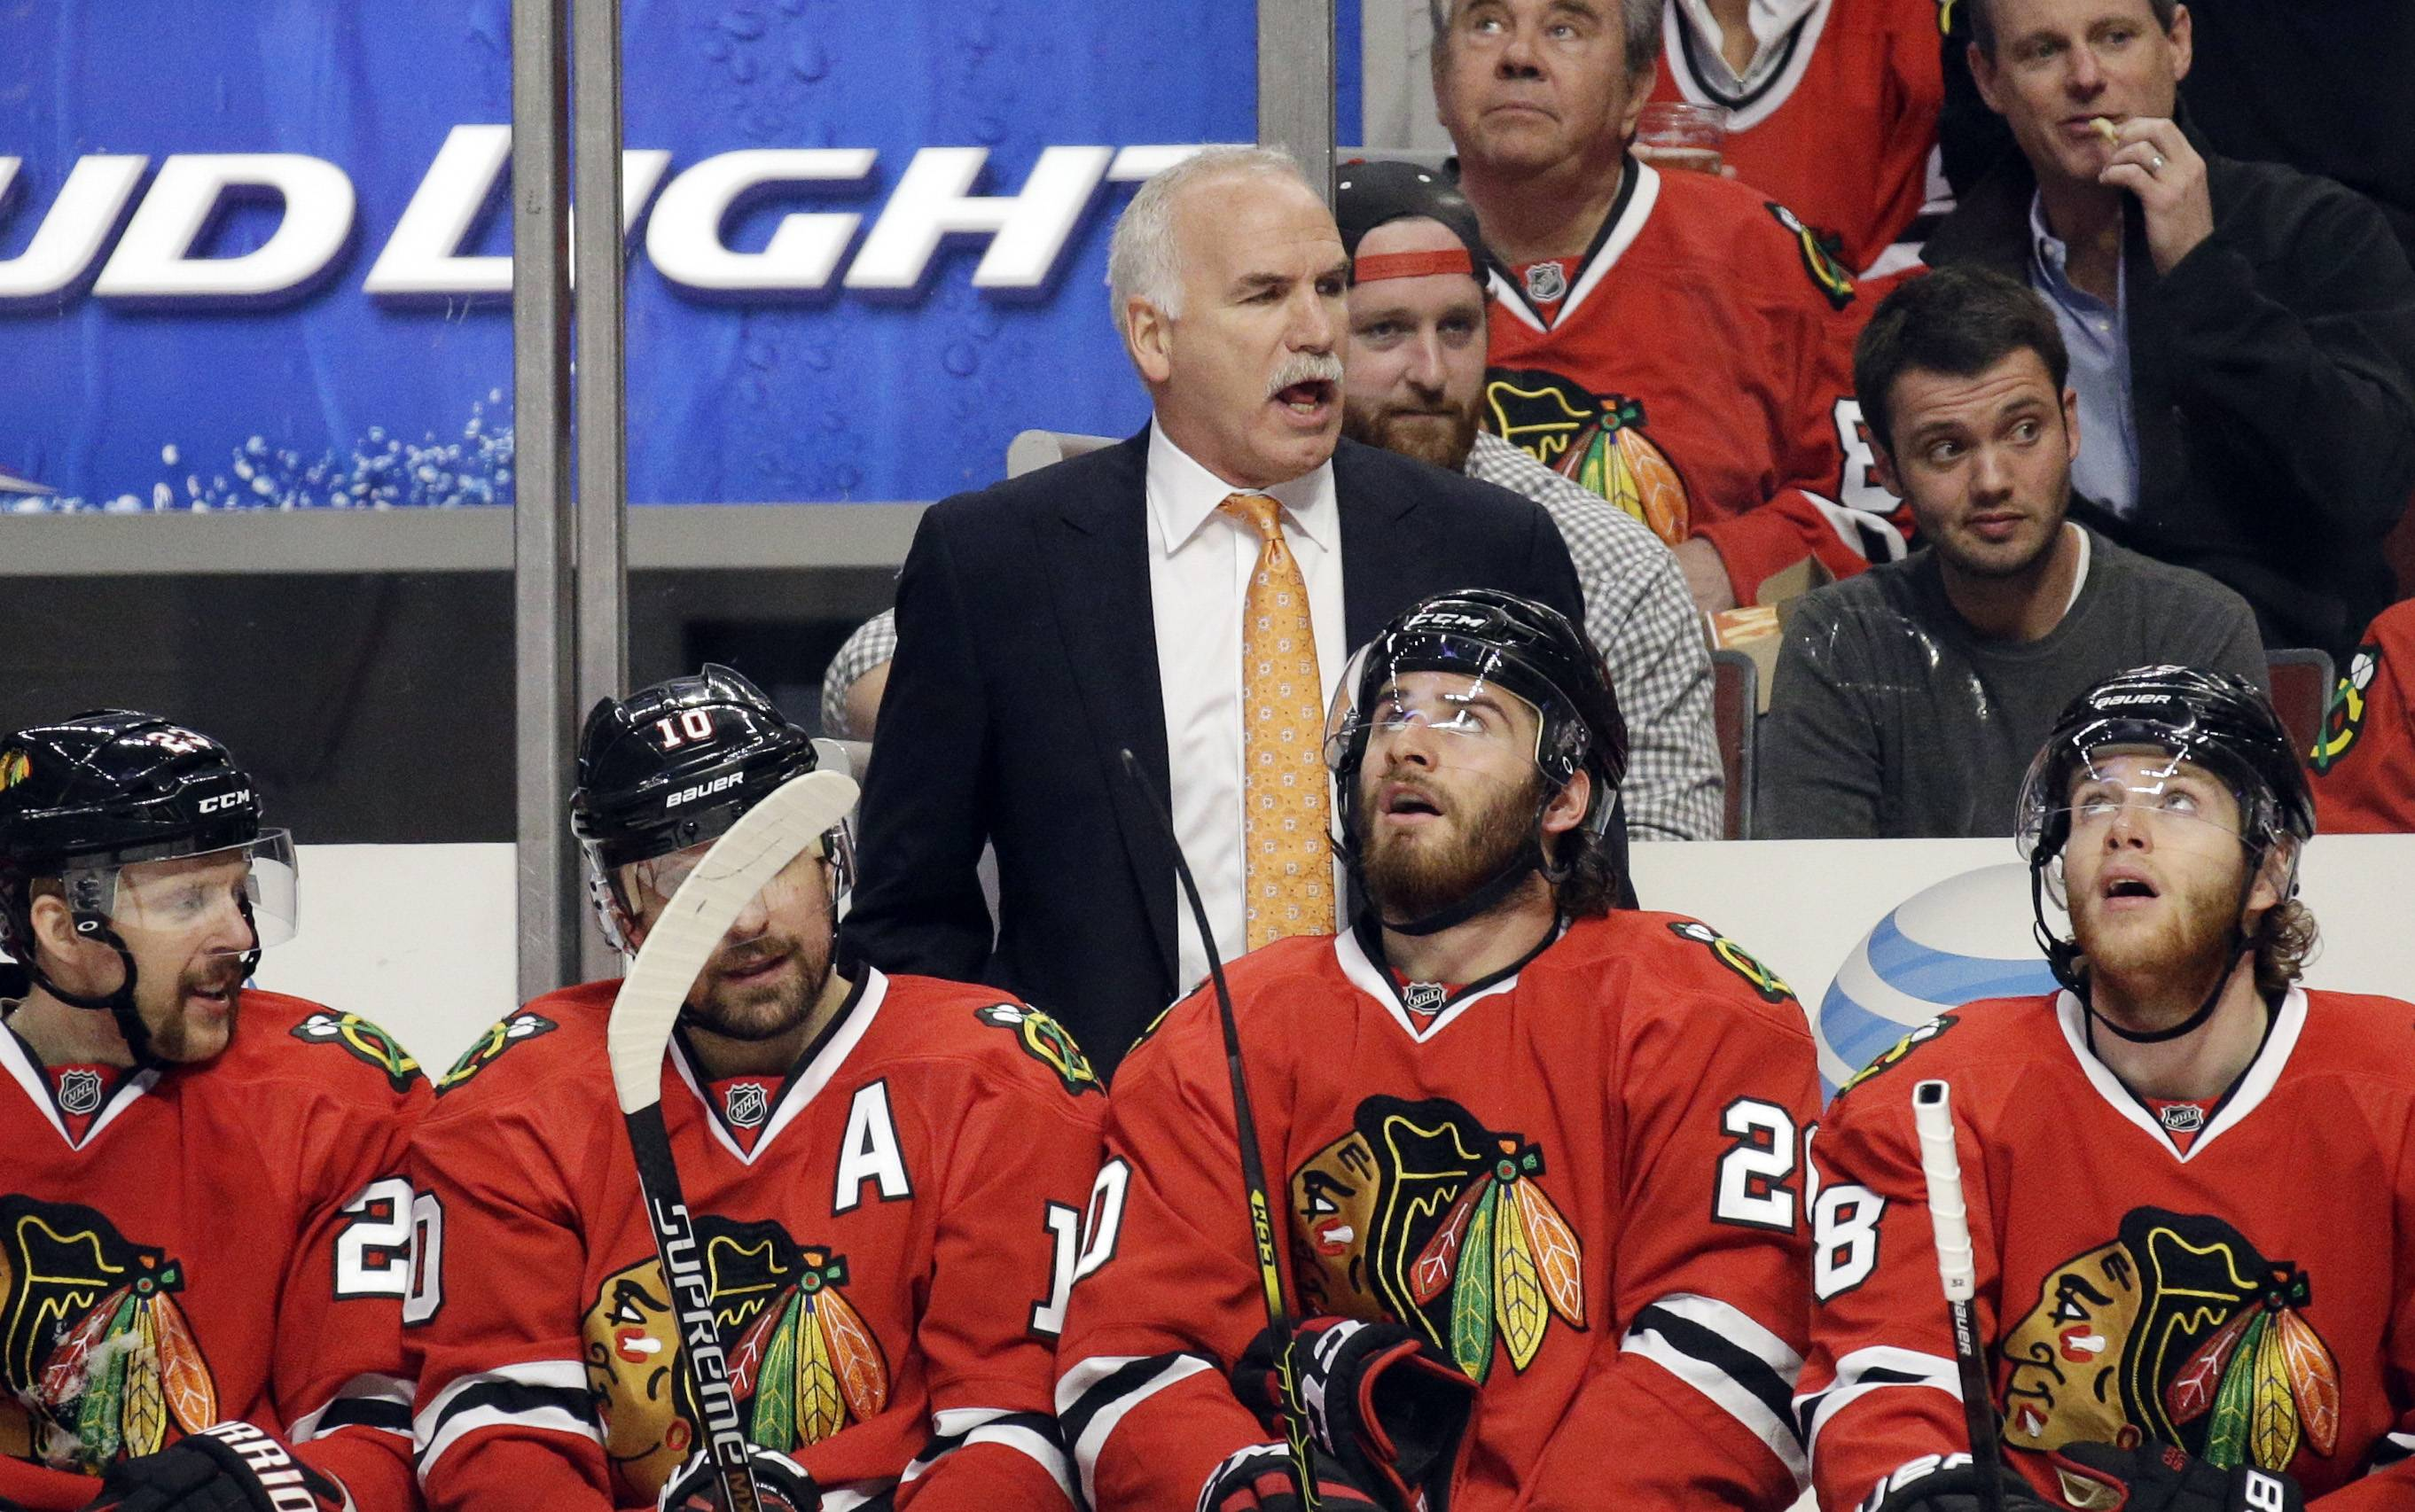 Chicago Blackhawks head coach Joel Quenneville directs his team during the second period.